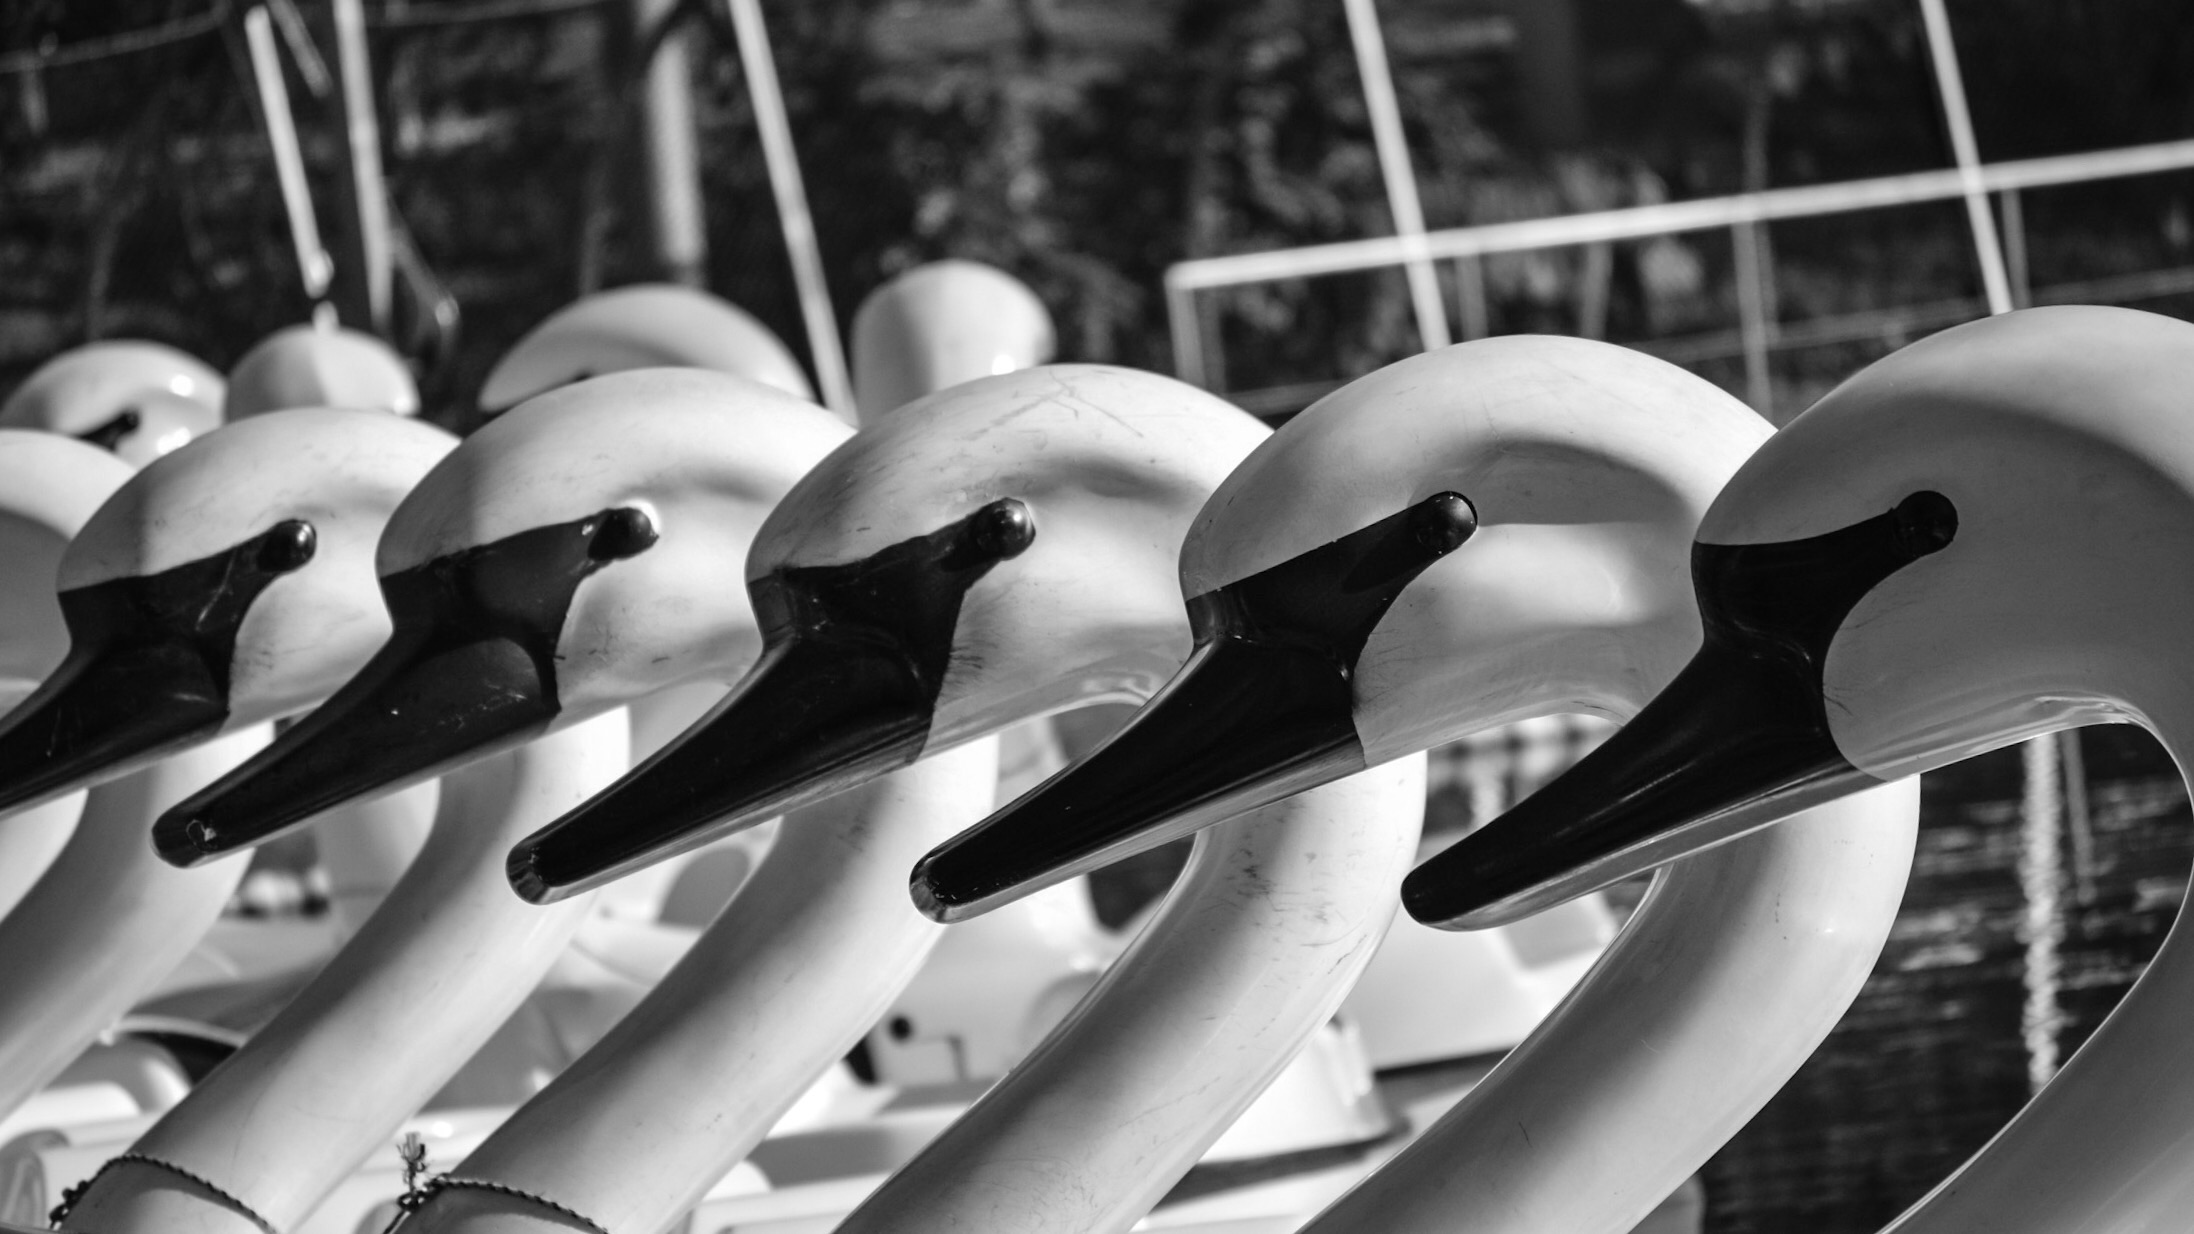 Swan boats waiting to be rented on the zoo's lake